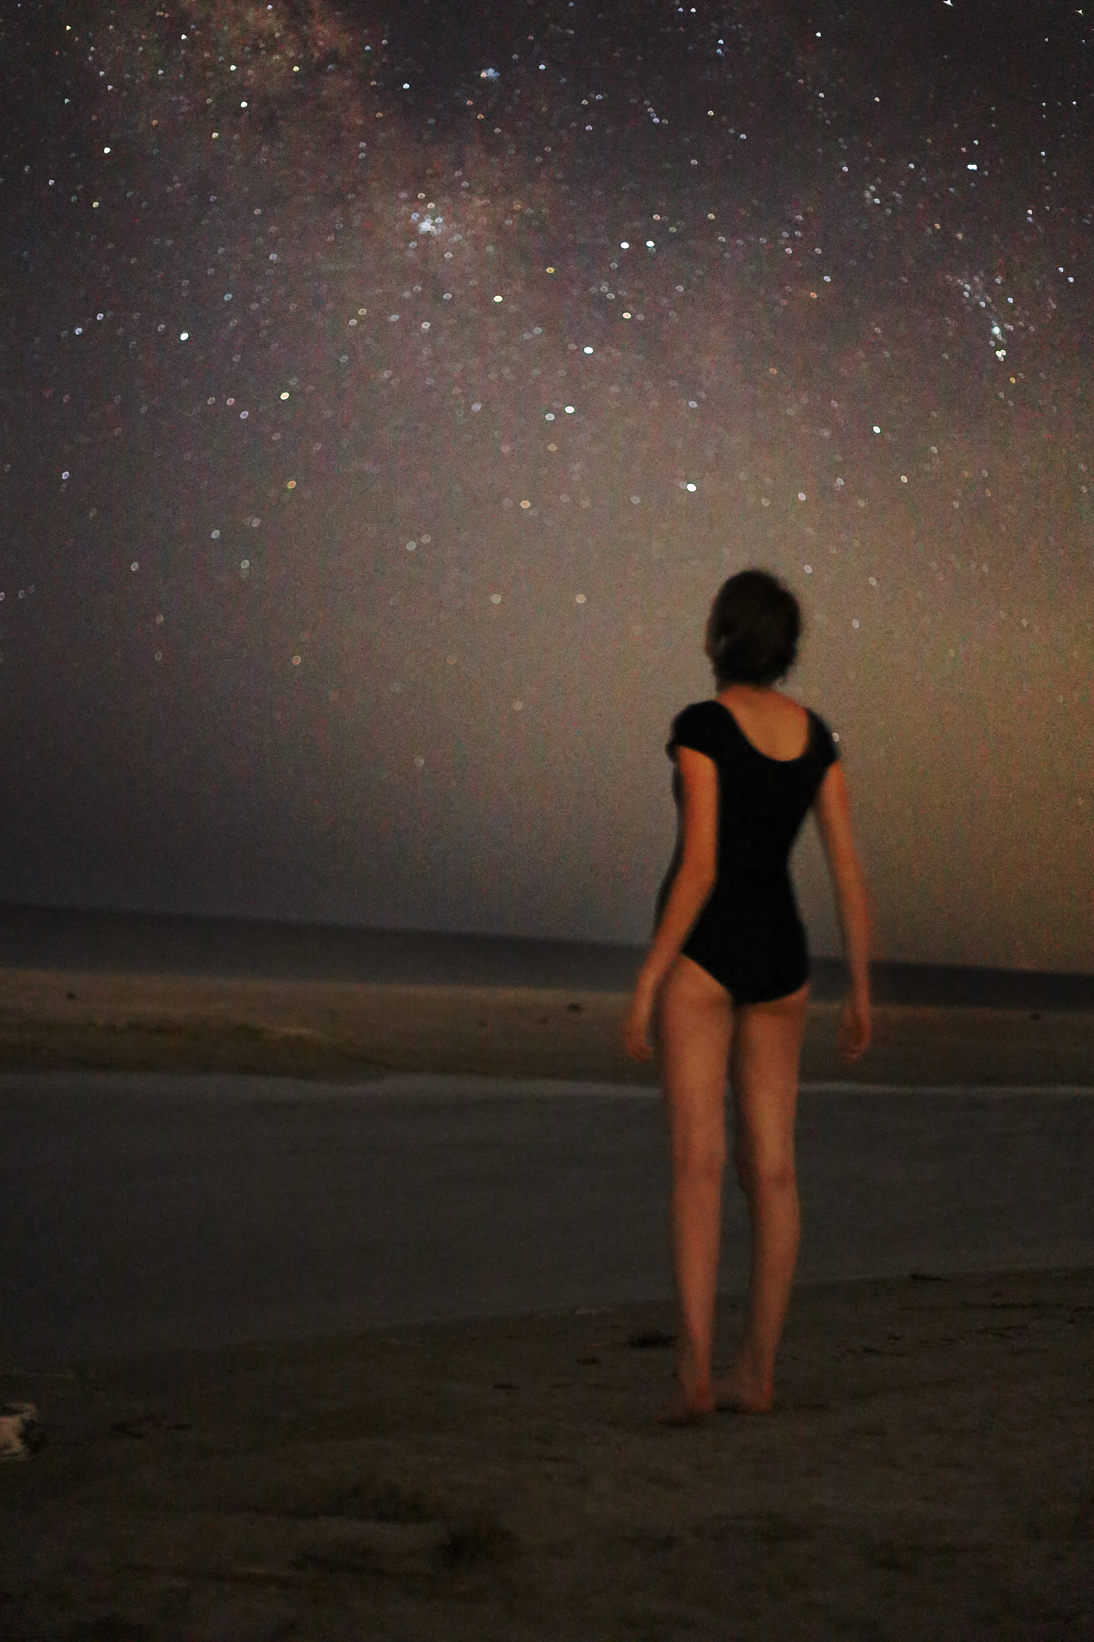 #5- This was taken on Jekyll Island on a family road trip. My mom and I walked outside to take a few photos of the stars and I was absolutely blown away by how well we were able to see them. Naturally, I ended up running around taking self portraits for half an hour. The way the sand looks in this picture reminds me a little bit of the moon's surface, which makes me like it even more.